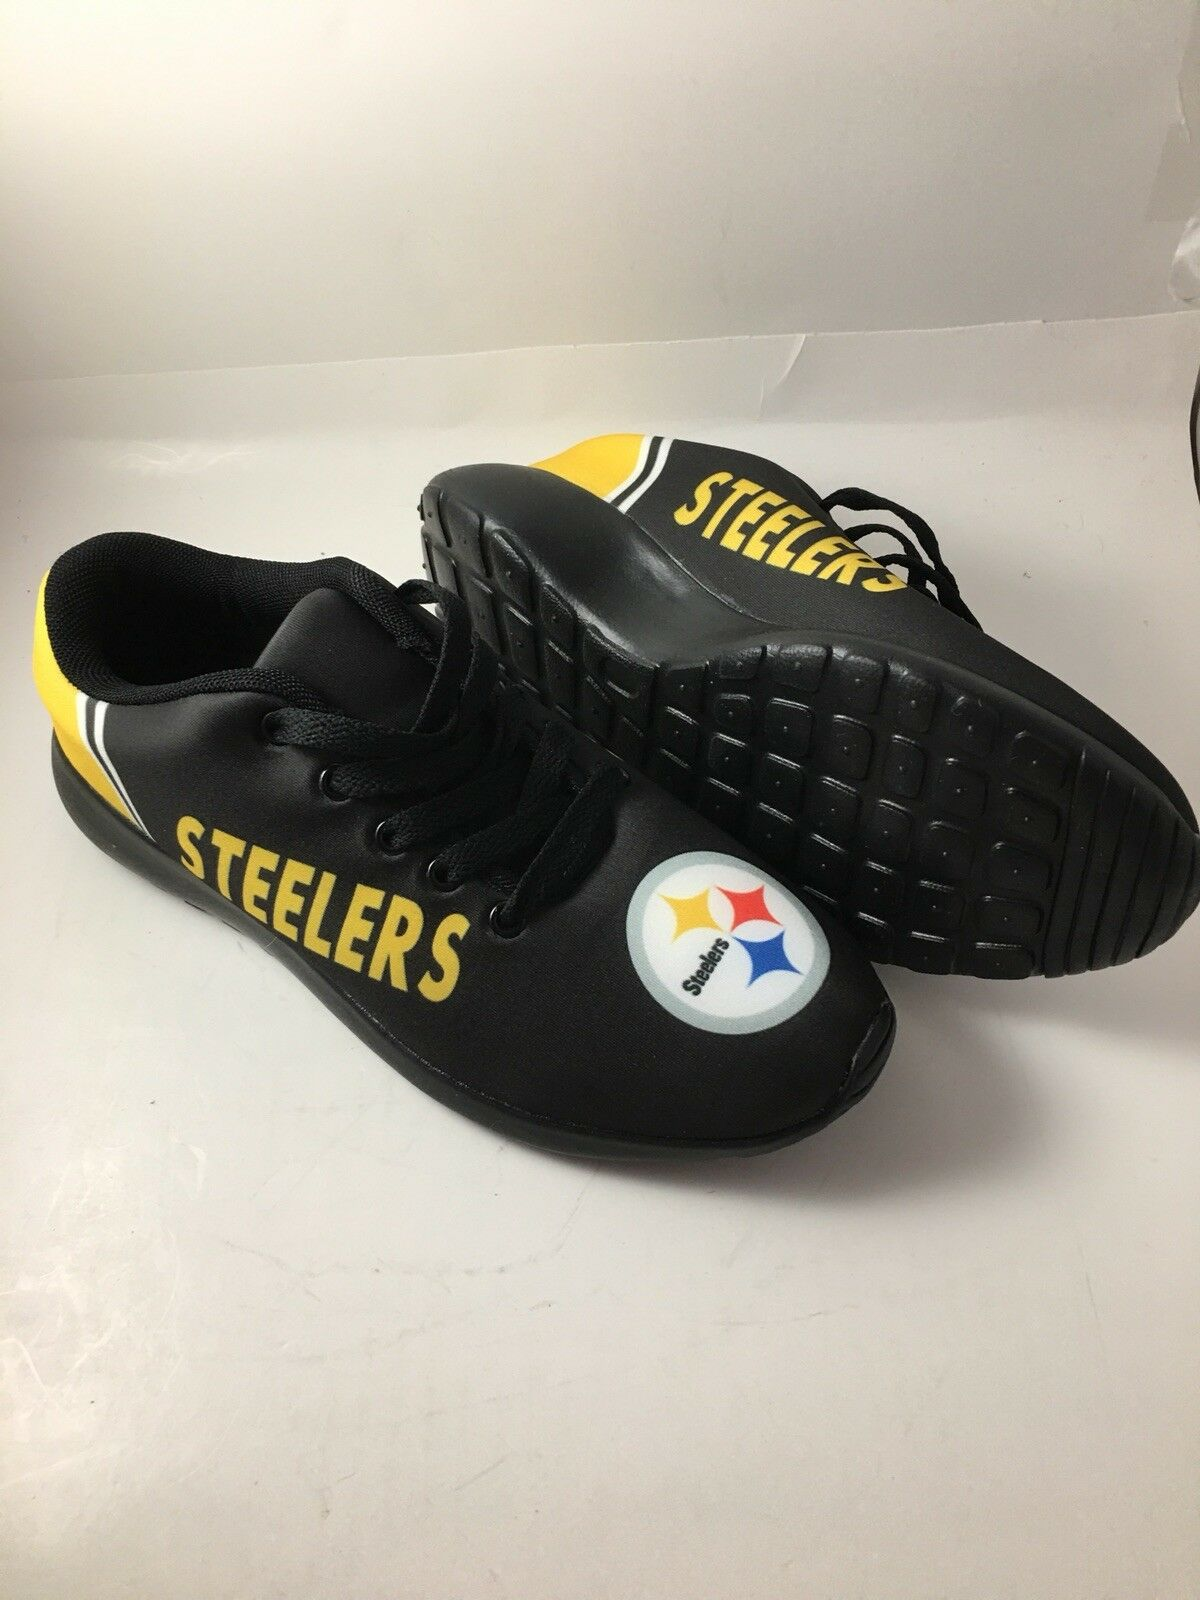 Pittsburg Steelers Unbranded Womens Size 8 Tennis shoes